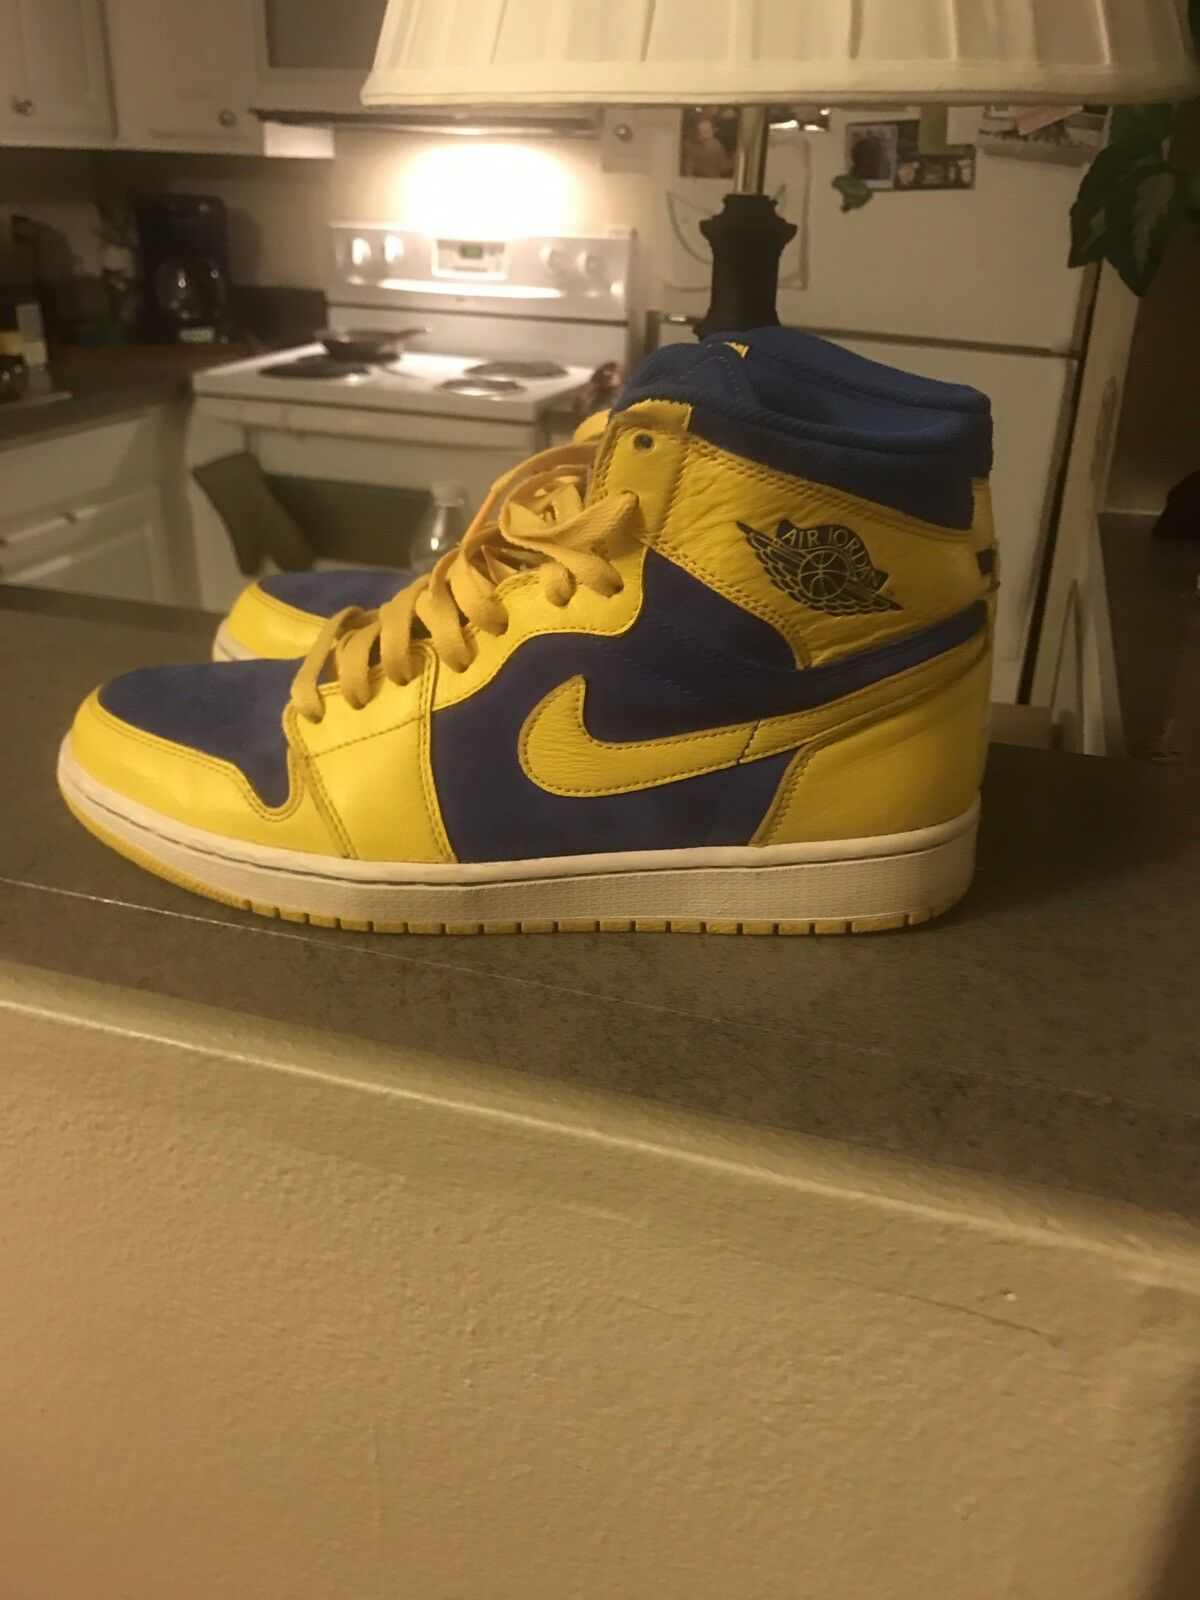 Man's/Woman's Jordan 1 Laneys Size 10 excellent excellent 10 quality New products in 2018 Very good classification acbb4e